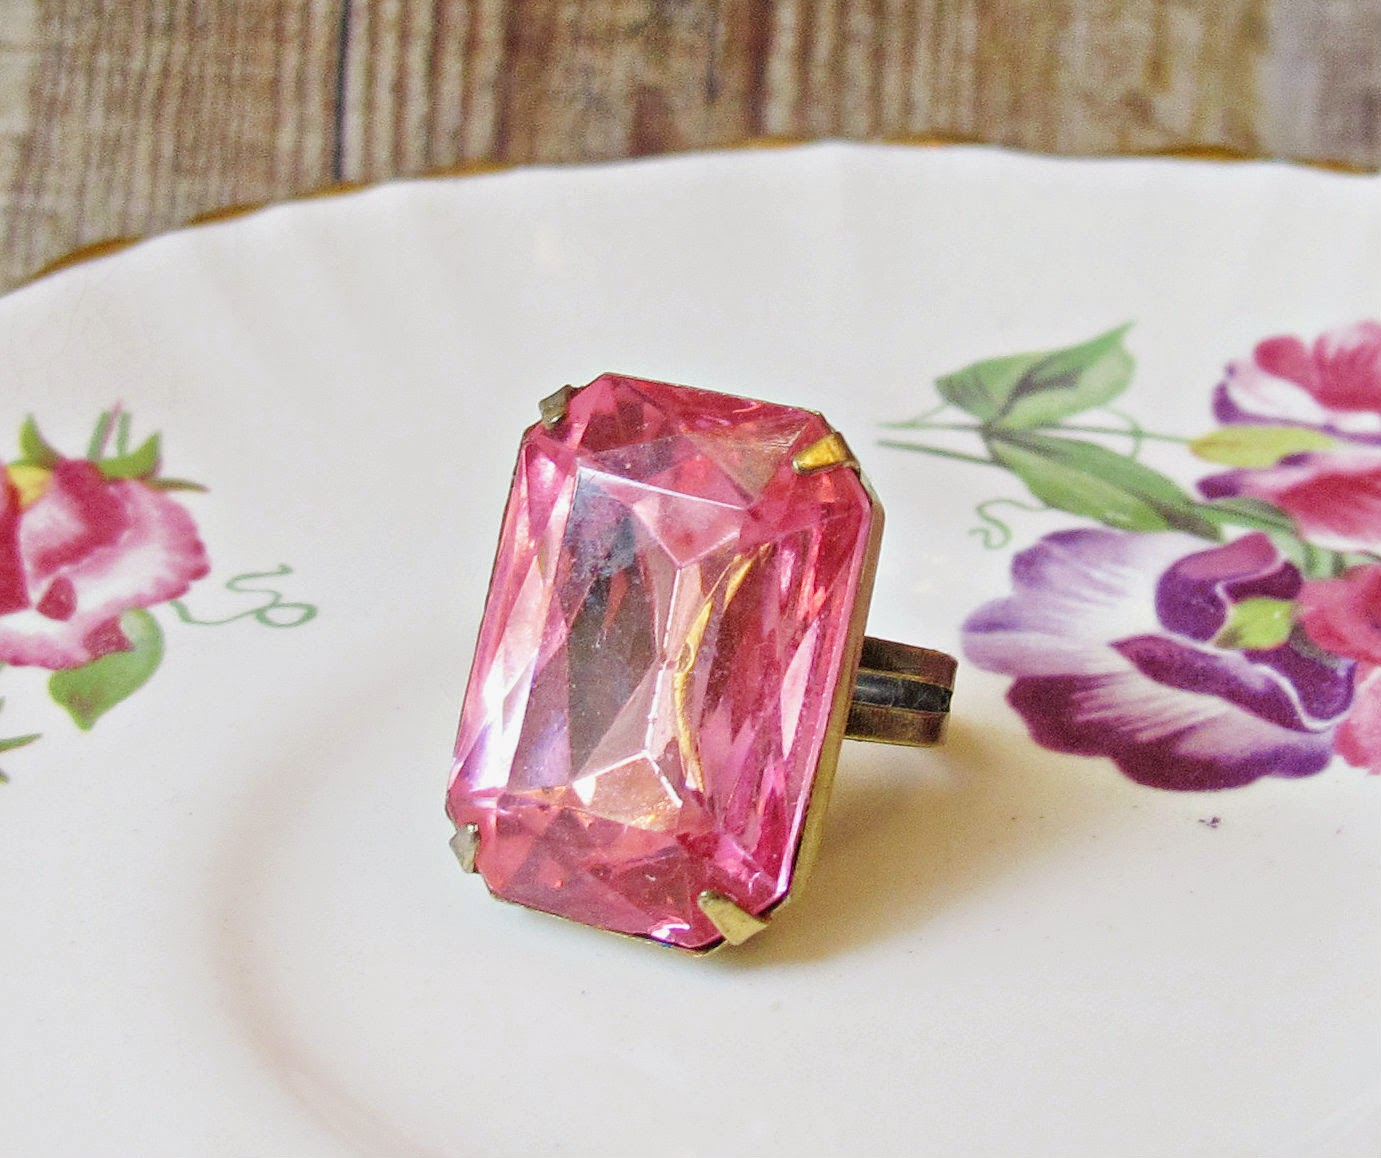 image azalea ring glam it up ring range vintage cocktail ring estate style pink brass adjustable two cheeky monkeys stone glass jewel